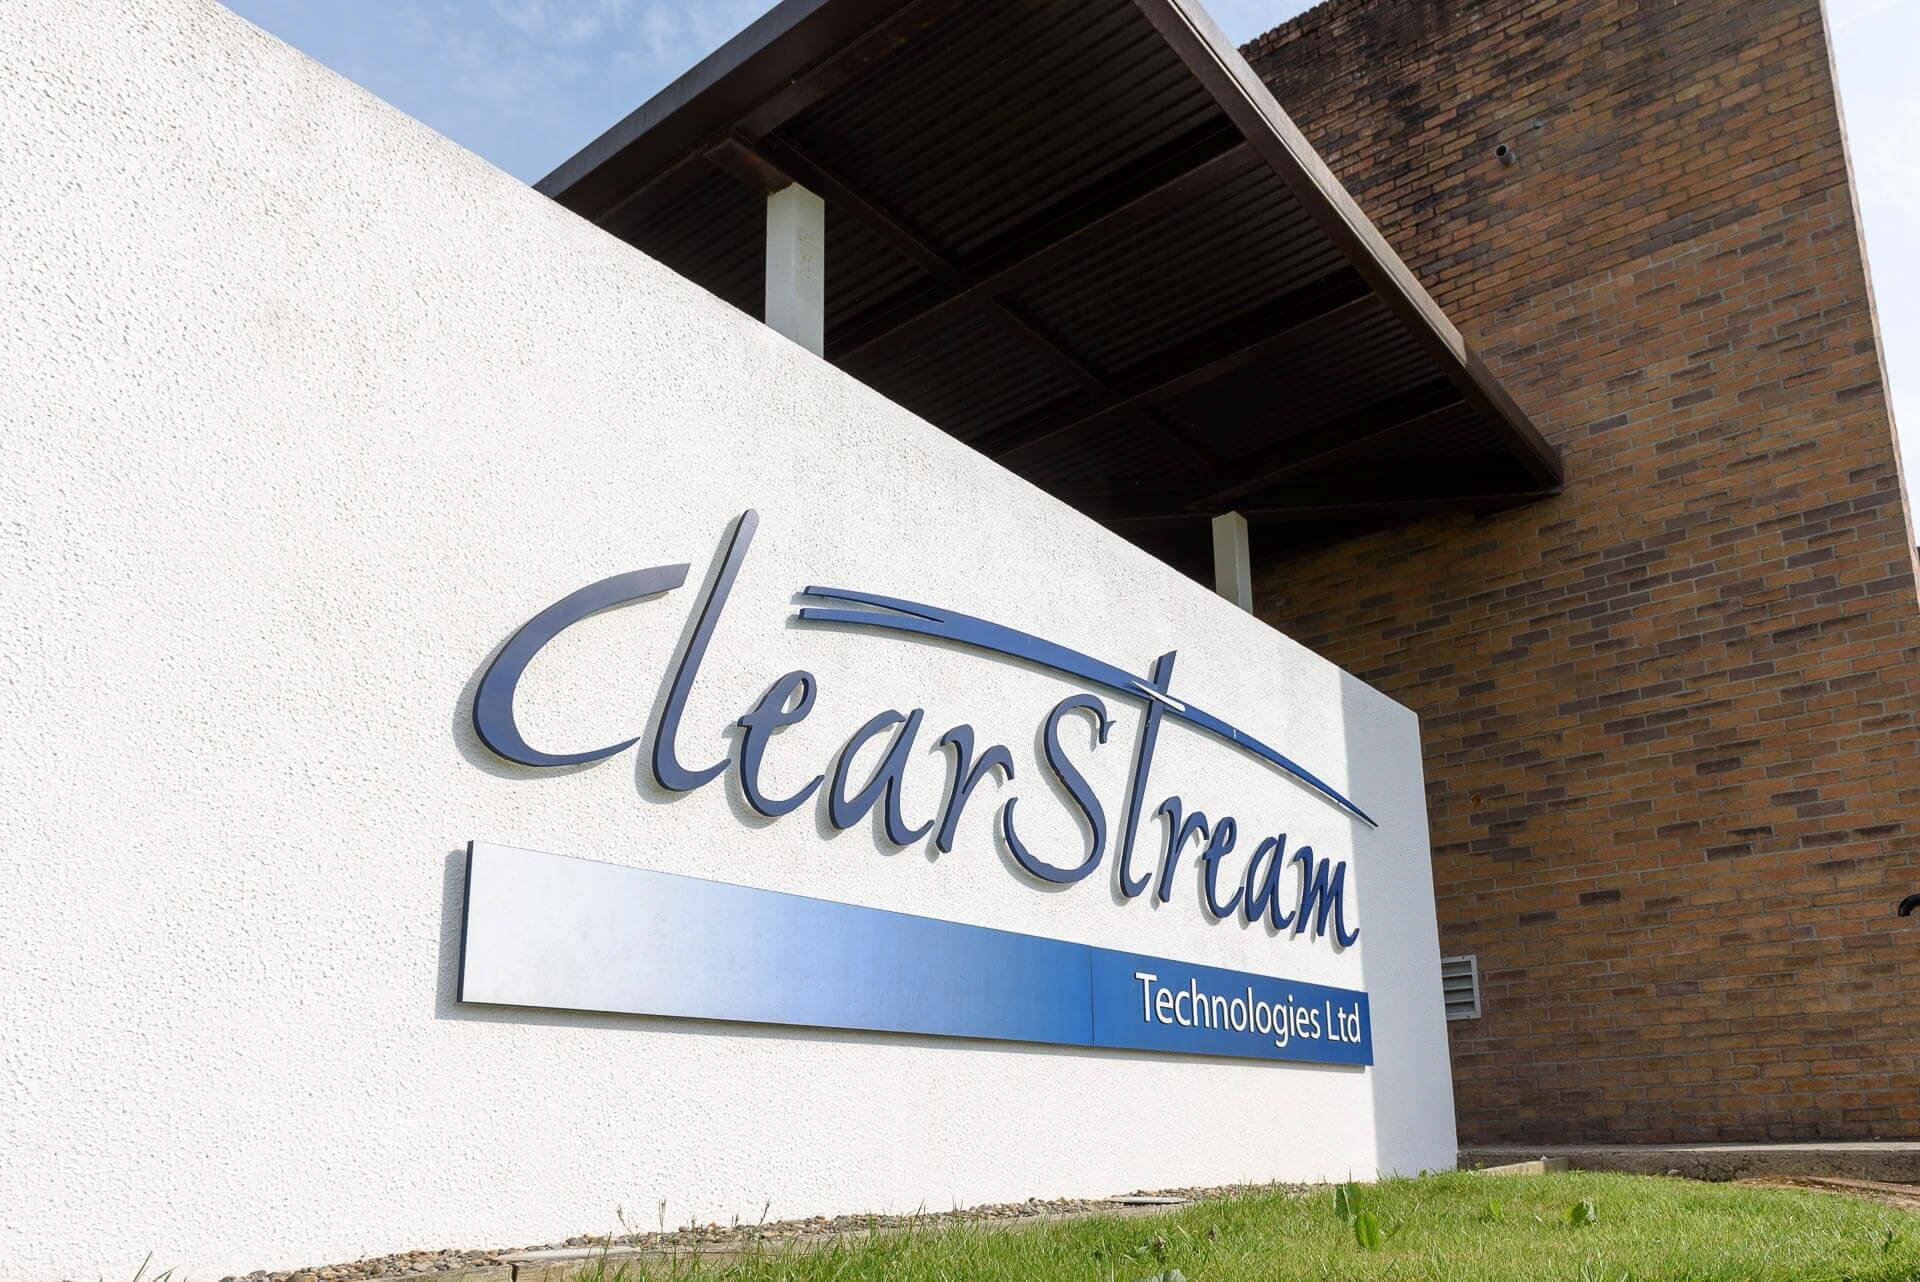 White signage wall with Clearstream logo pin mounted onto wall with brown brick façade and metal canopy.